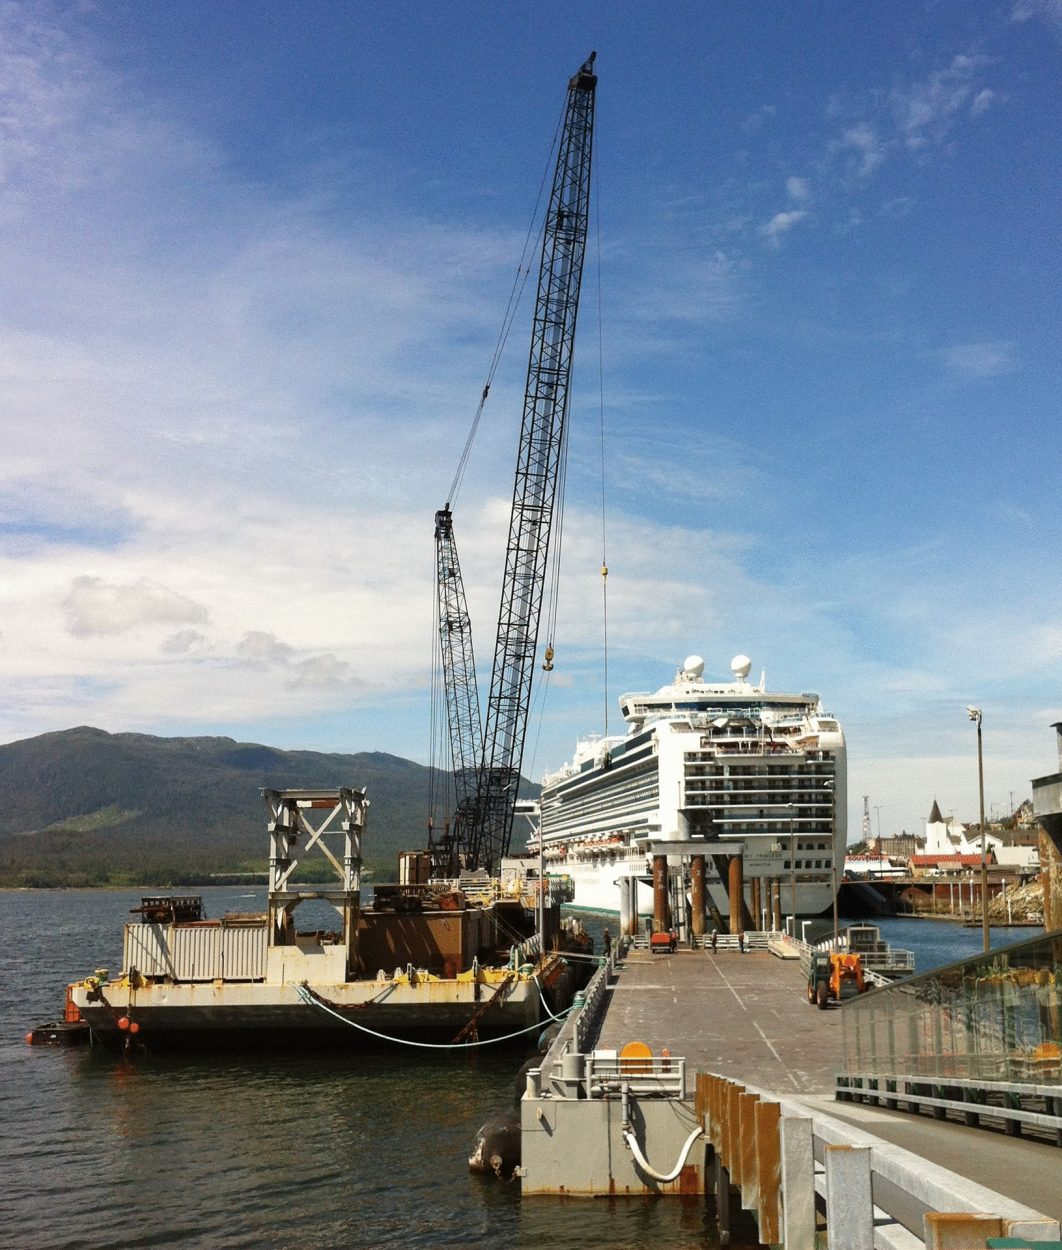 The repair barge for Turnagain Marine Construction is seen at Ketchikan's Berth 3, damaged when the cruise ship Infinity hit the dock on June 3rd. (Photo by Leila Kheiry)